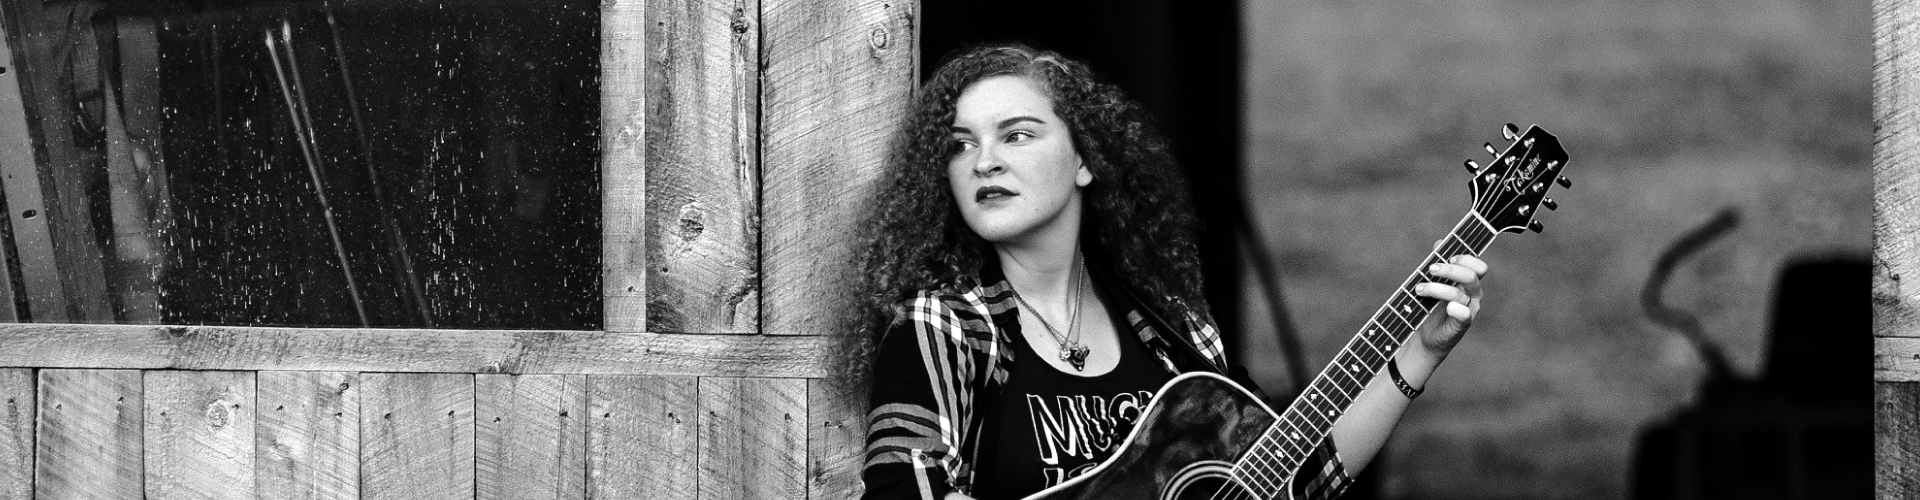 Rachel McCamy Nashville Singer Songwriter - About